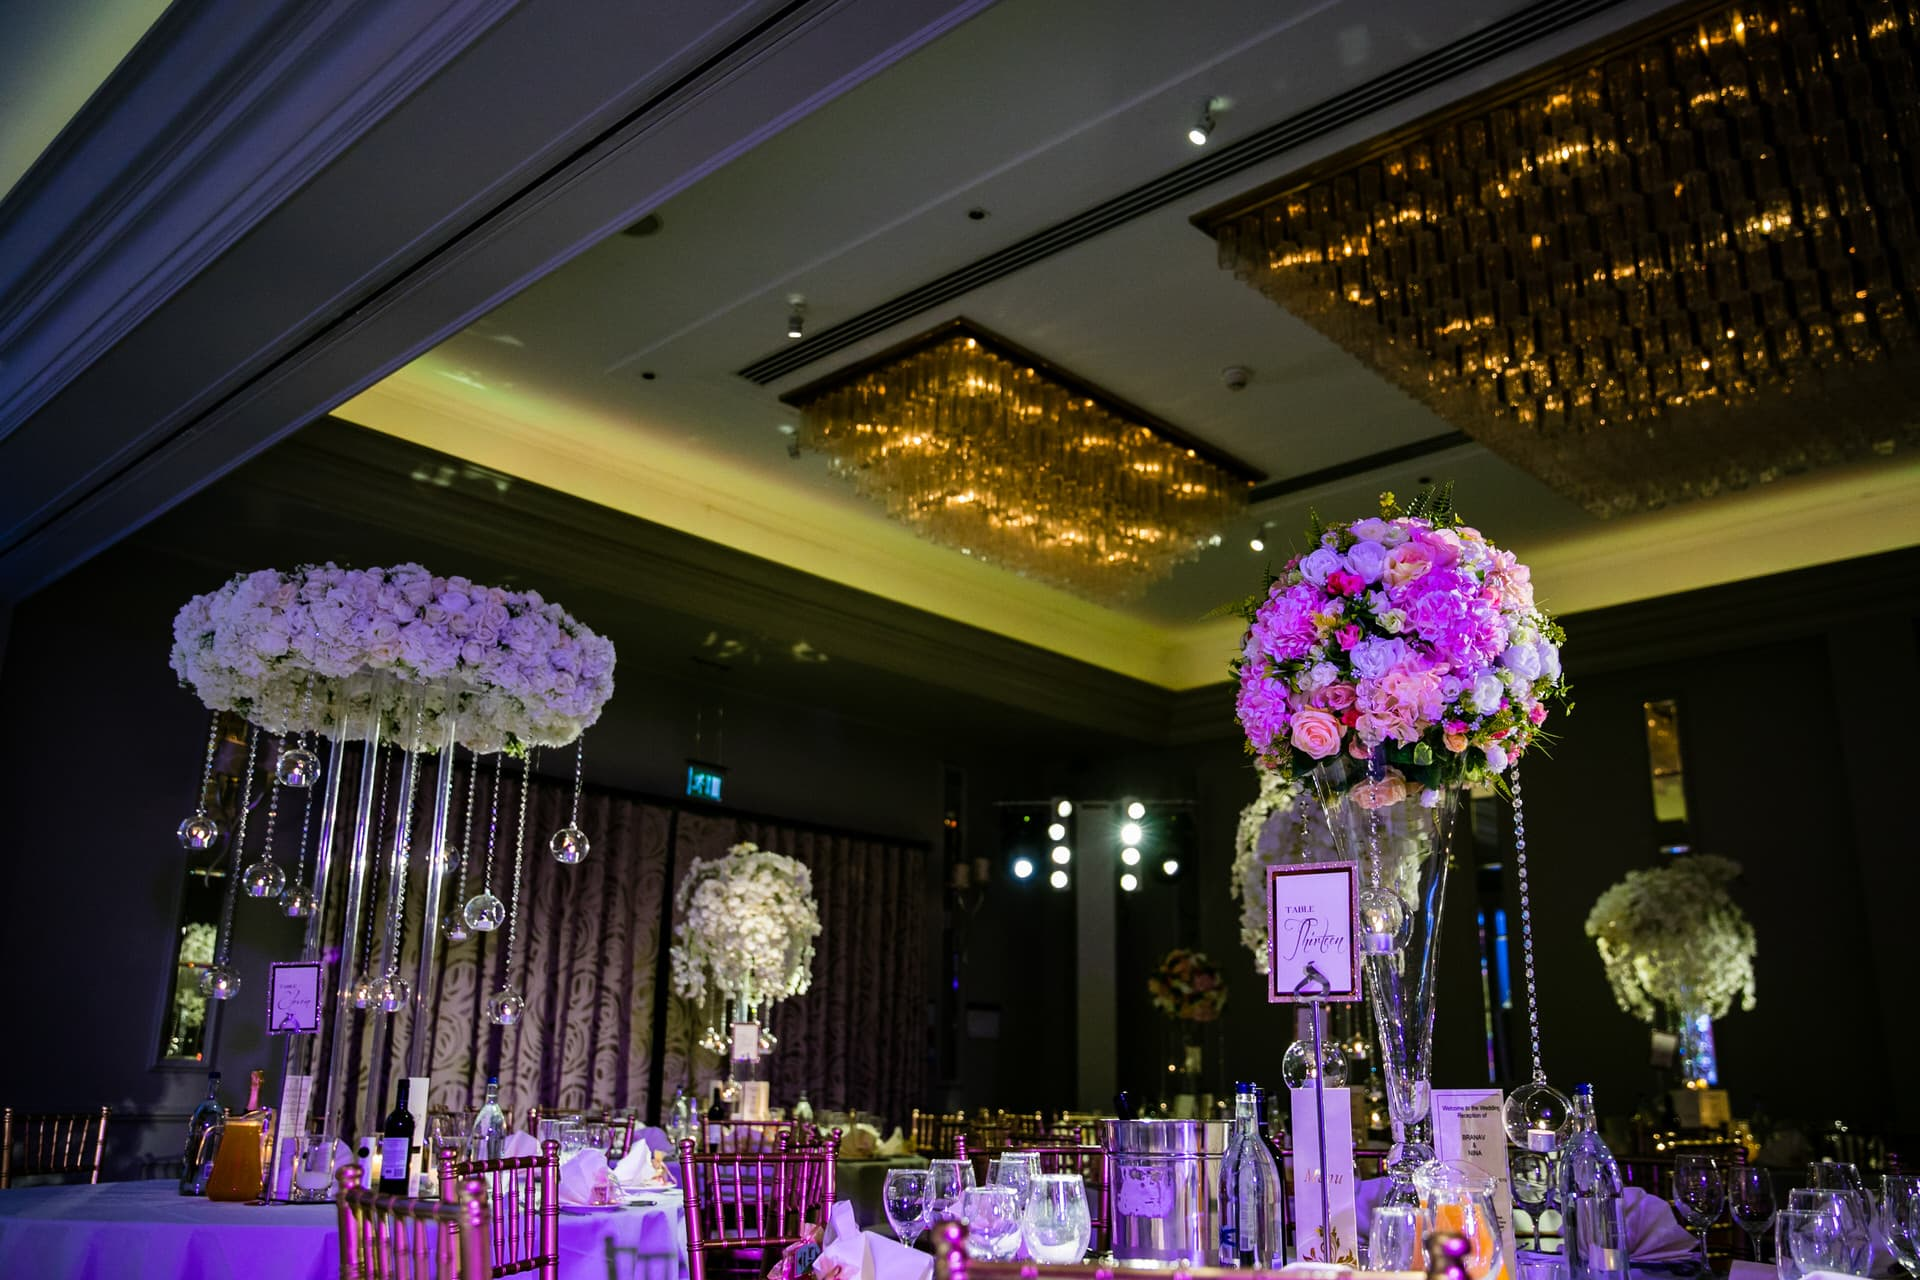 Wedding reception party setup by Shagun weddings